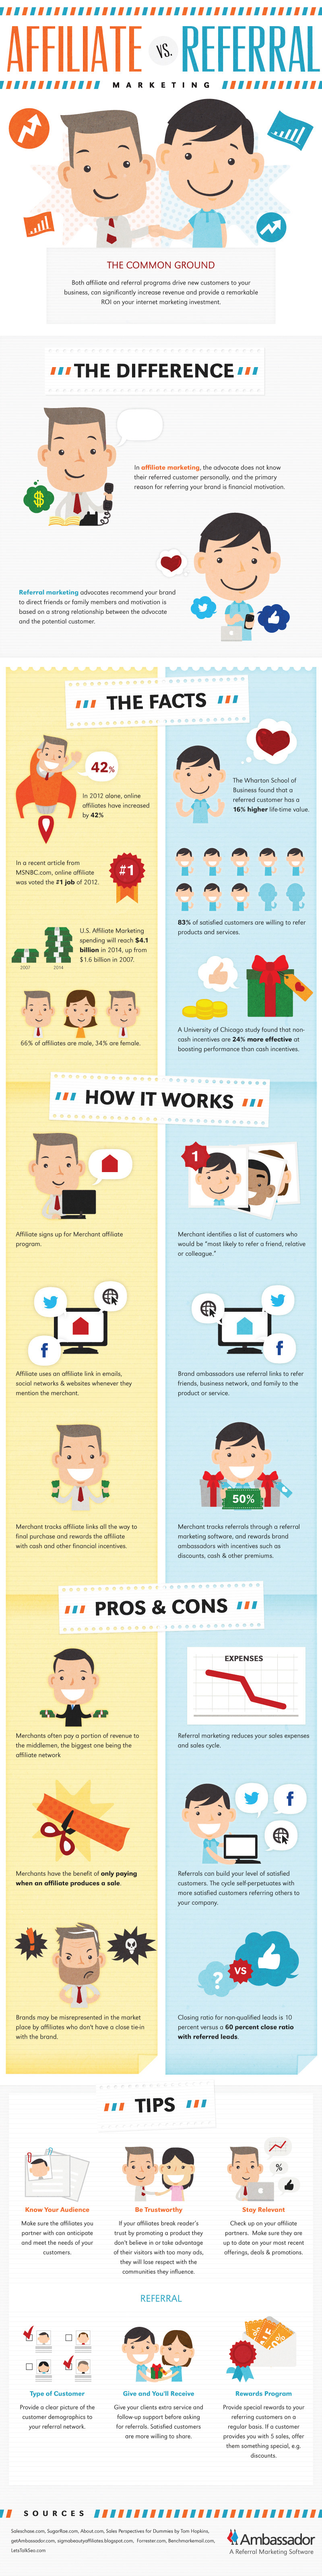 Affiliate Marketing vs. Referral Marketing (Infographic)